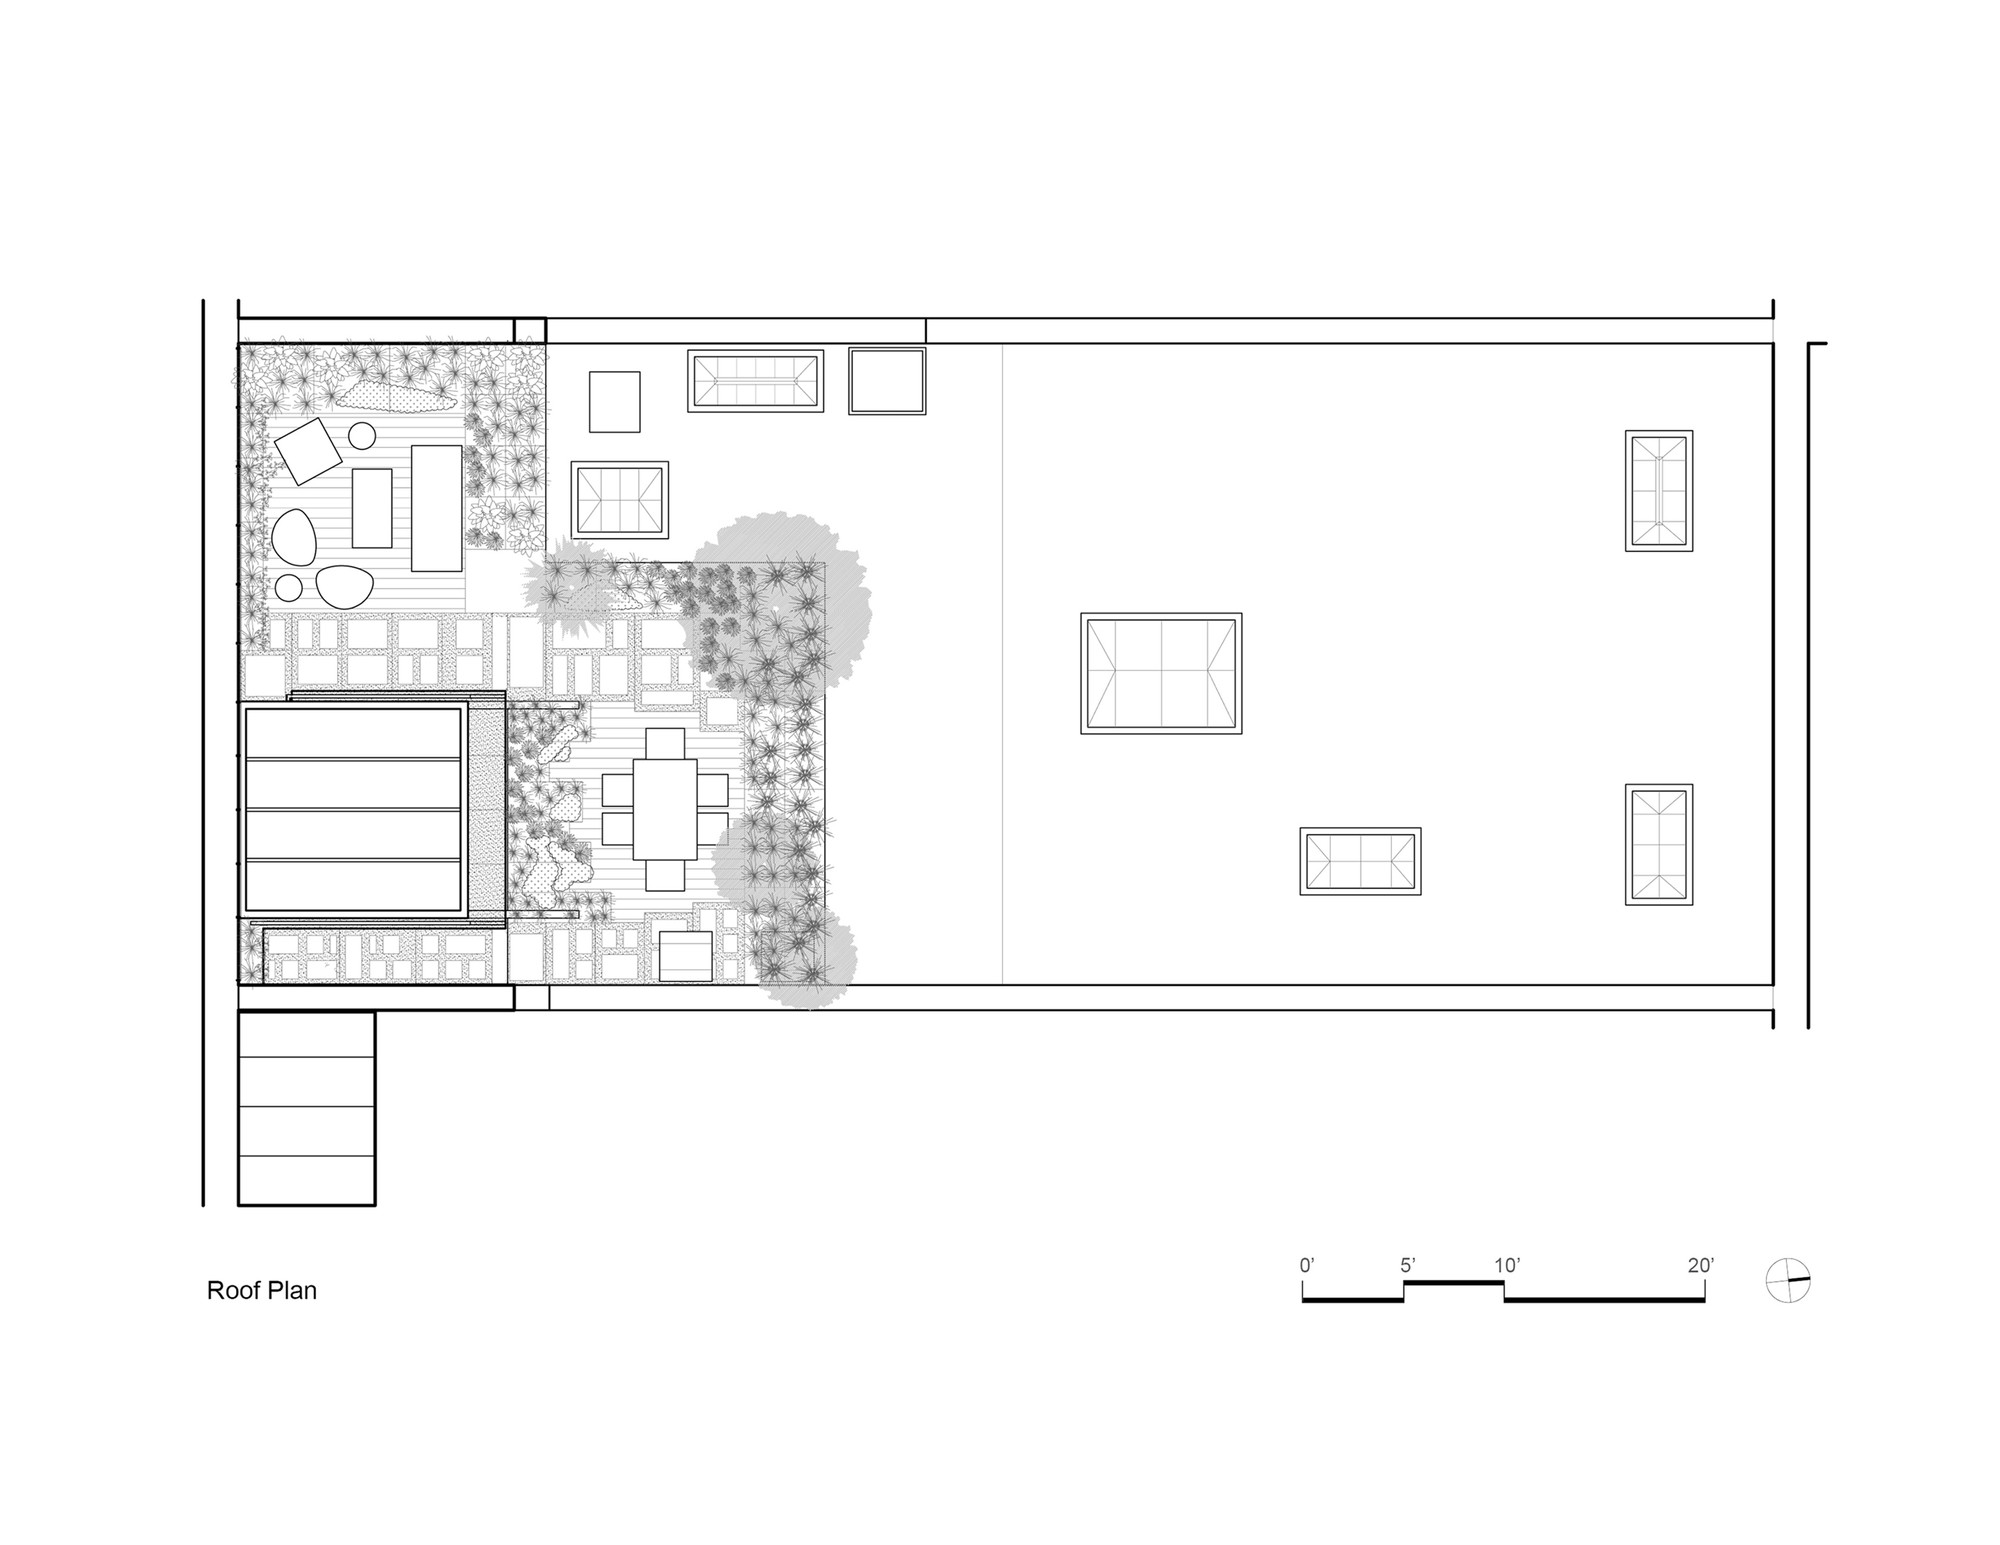 Tribeca Loft / Andrew Franz Architect. 11 / 12. Roof Plan